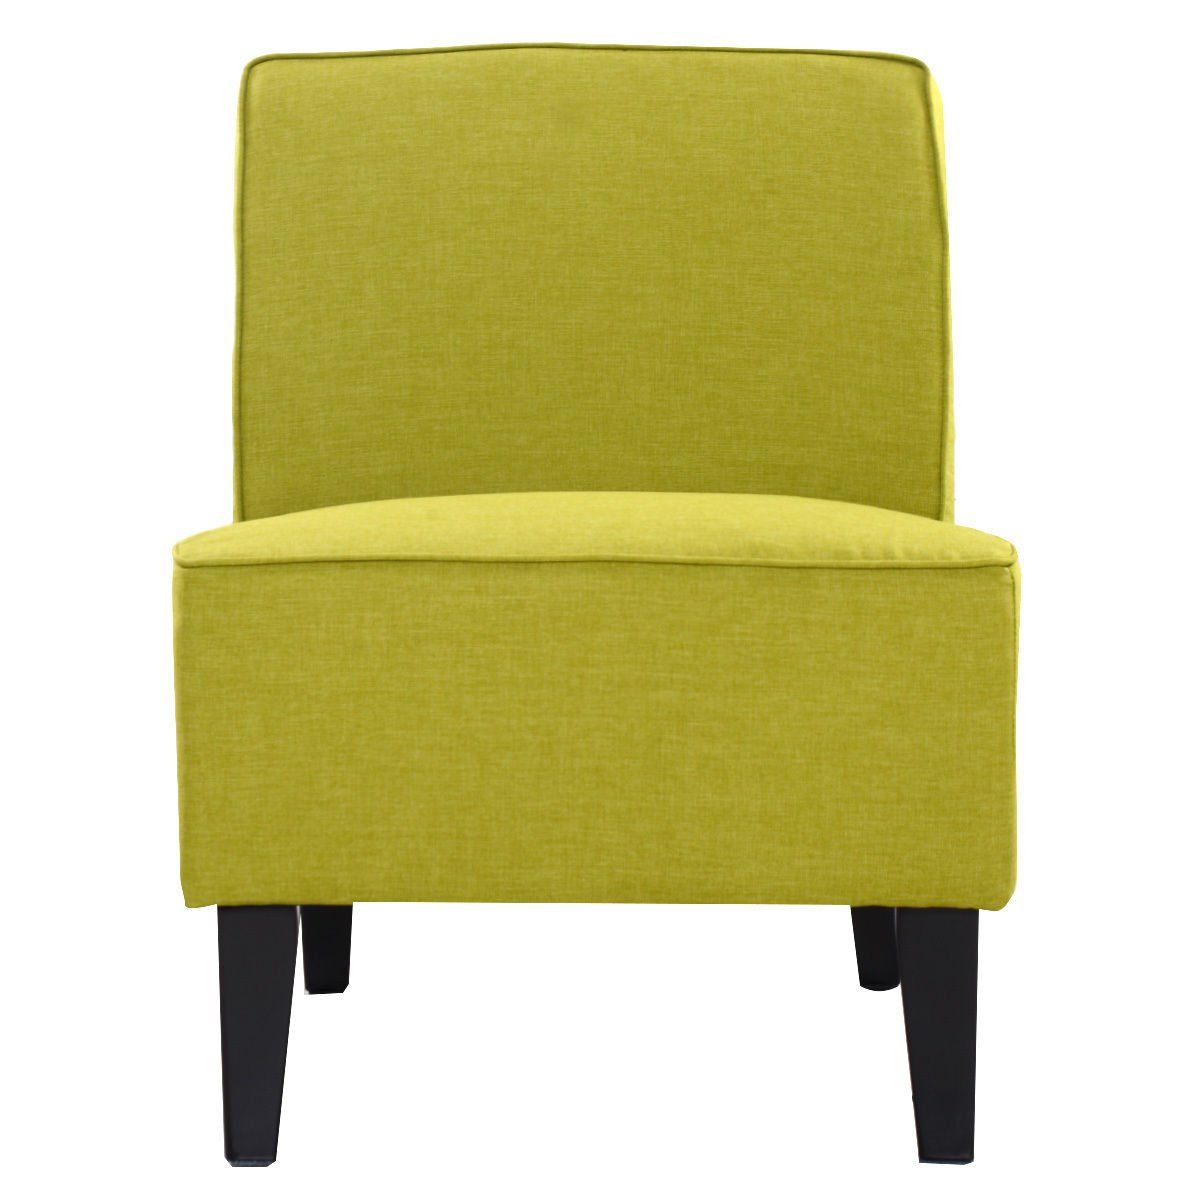 Amazing Giantex Deco Solids Accent Chair Armless Living Room Bedroom Gmtry Best Dining Table And Chair Ideas Images Gmtryco